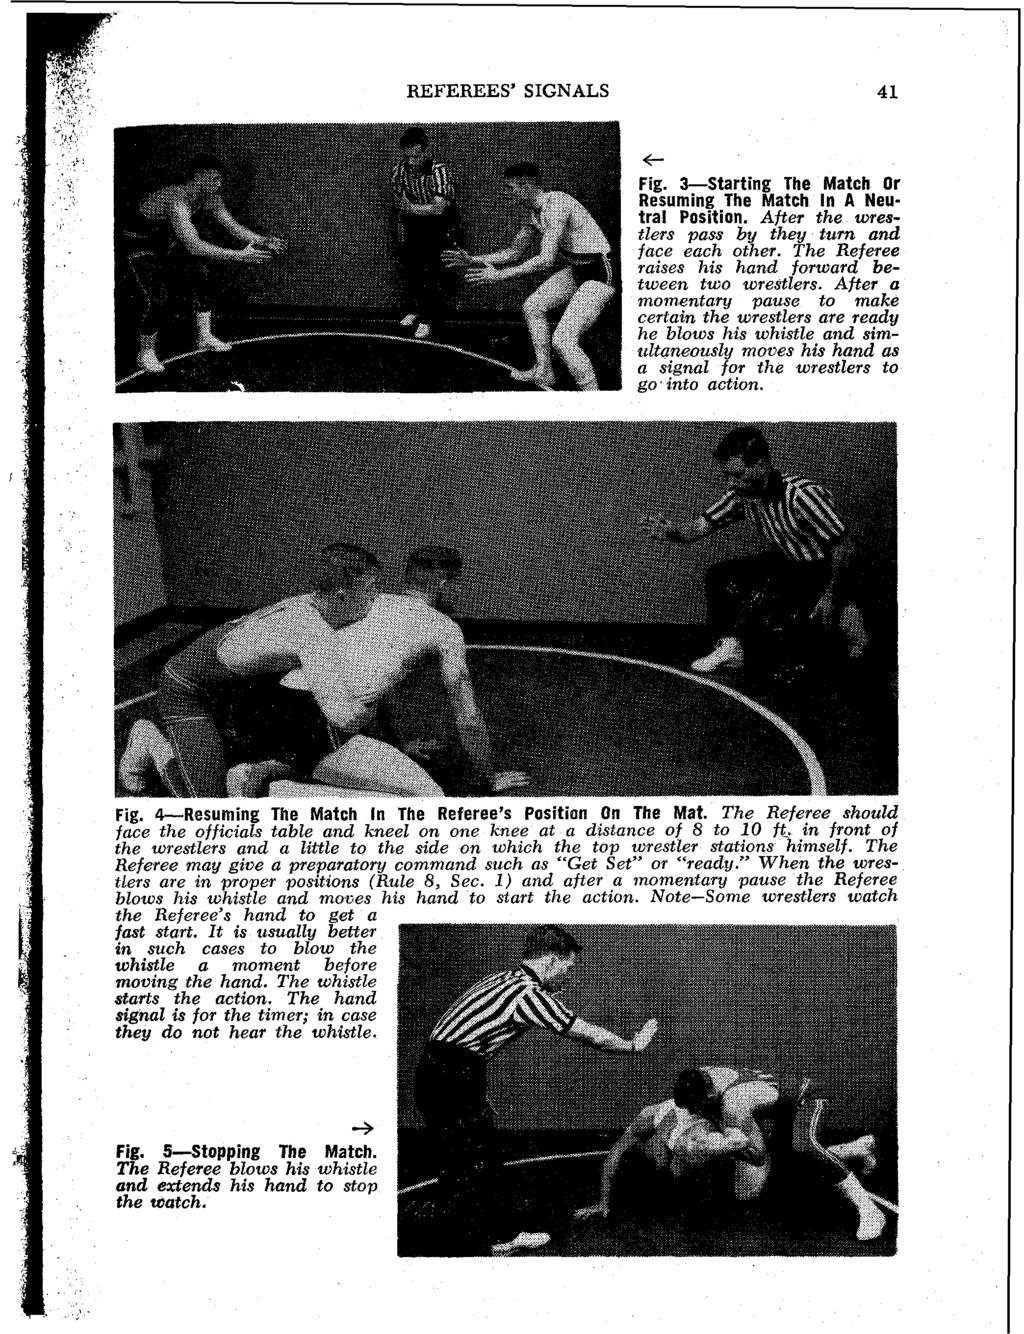 REFEREES' SIGNALS 4 1 Fig. &Resuming The Match In The Referee's Position On The Mat. The Referee should face the officials table and kneel on one knee at a distance of 8 to 10 ft.